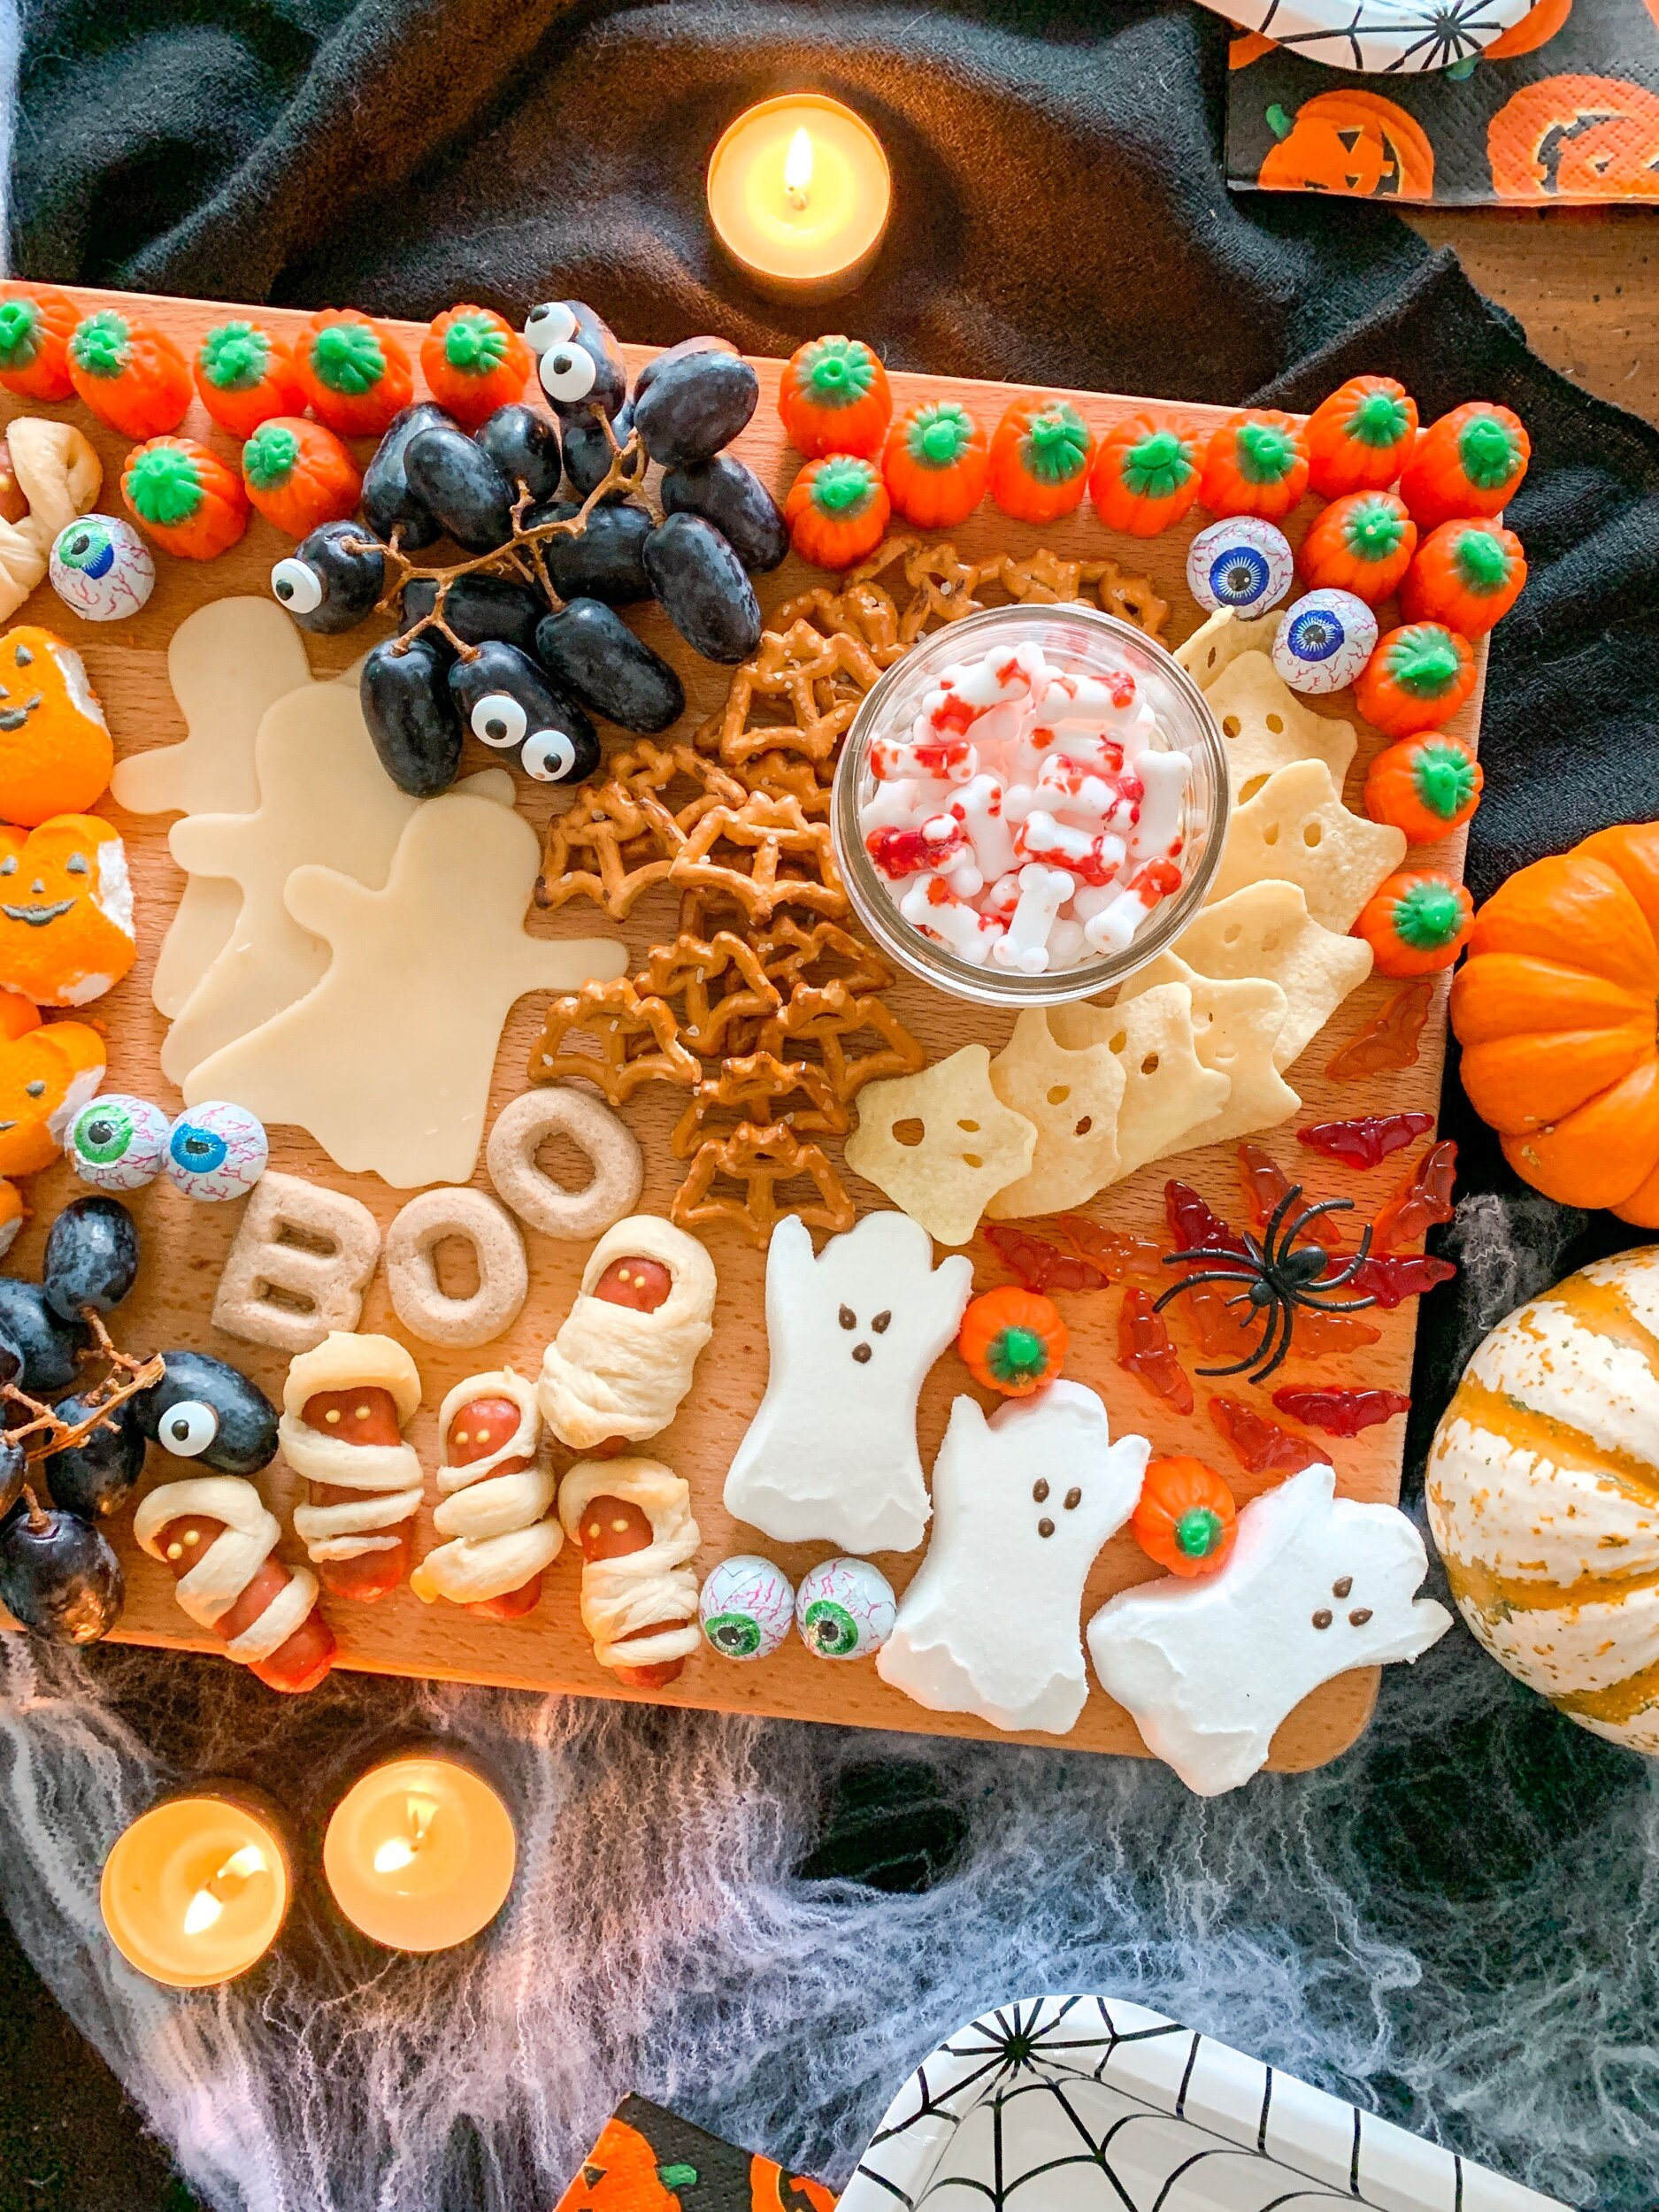 Little details and treats make a fun holiday charcuterie board